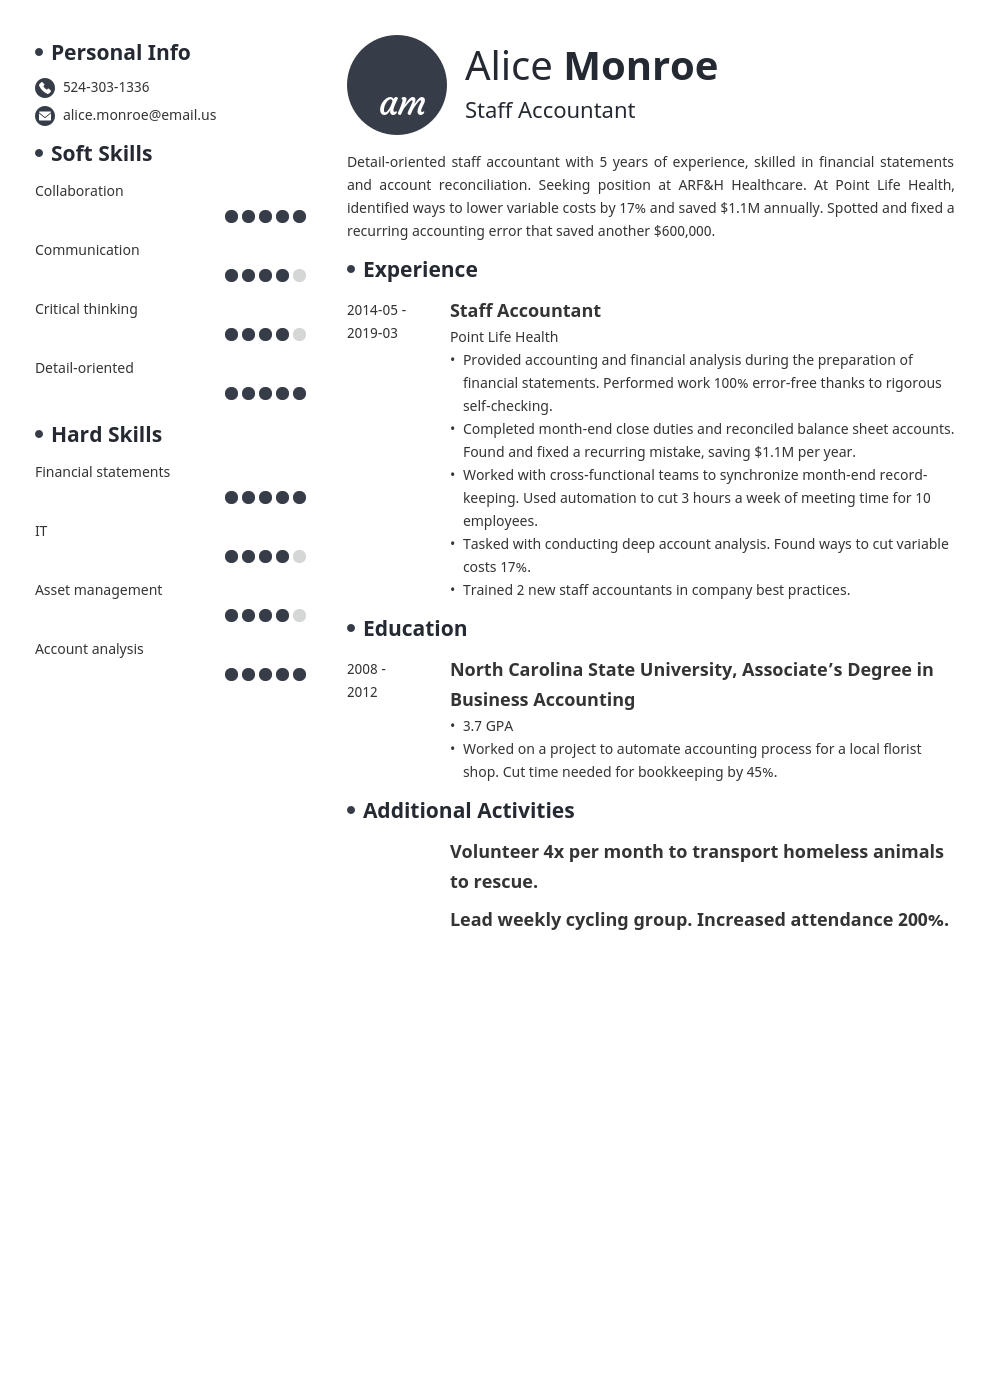 staff accountant resume example template initials